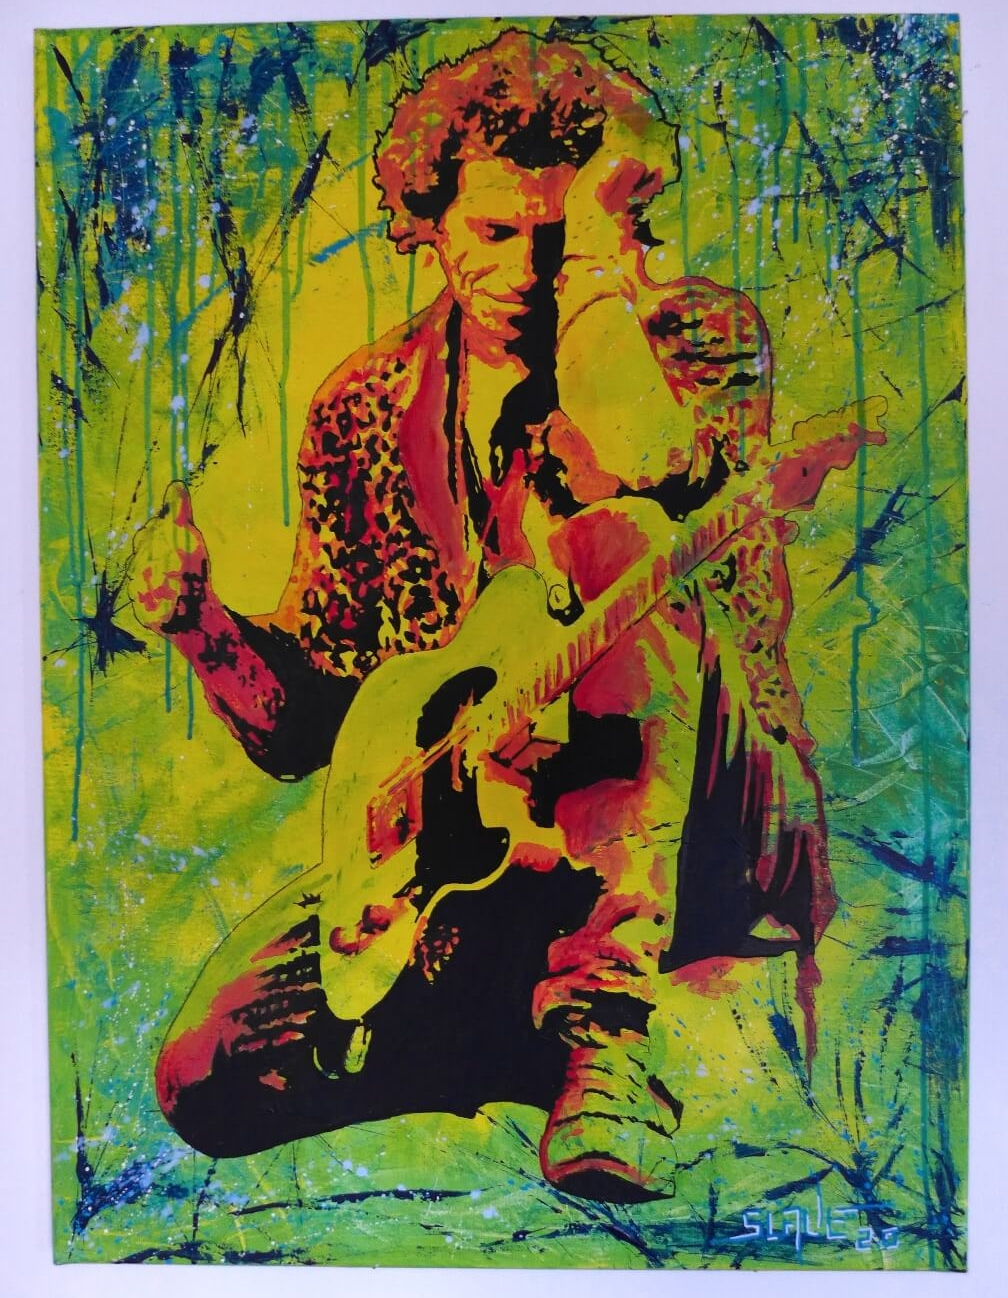 Keith Richards Street art on canvas tableau the rolling stones guitar par Slave 2.0